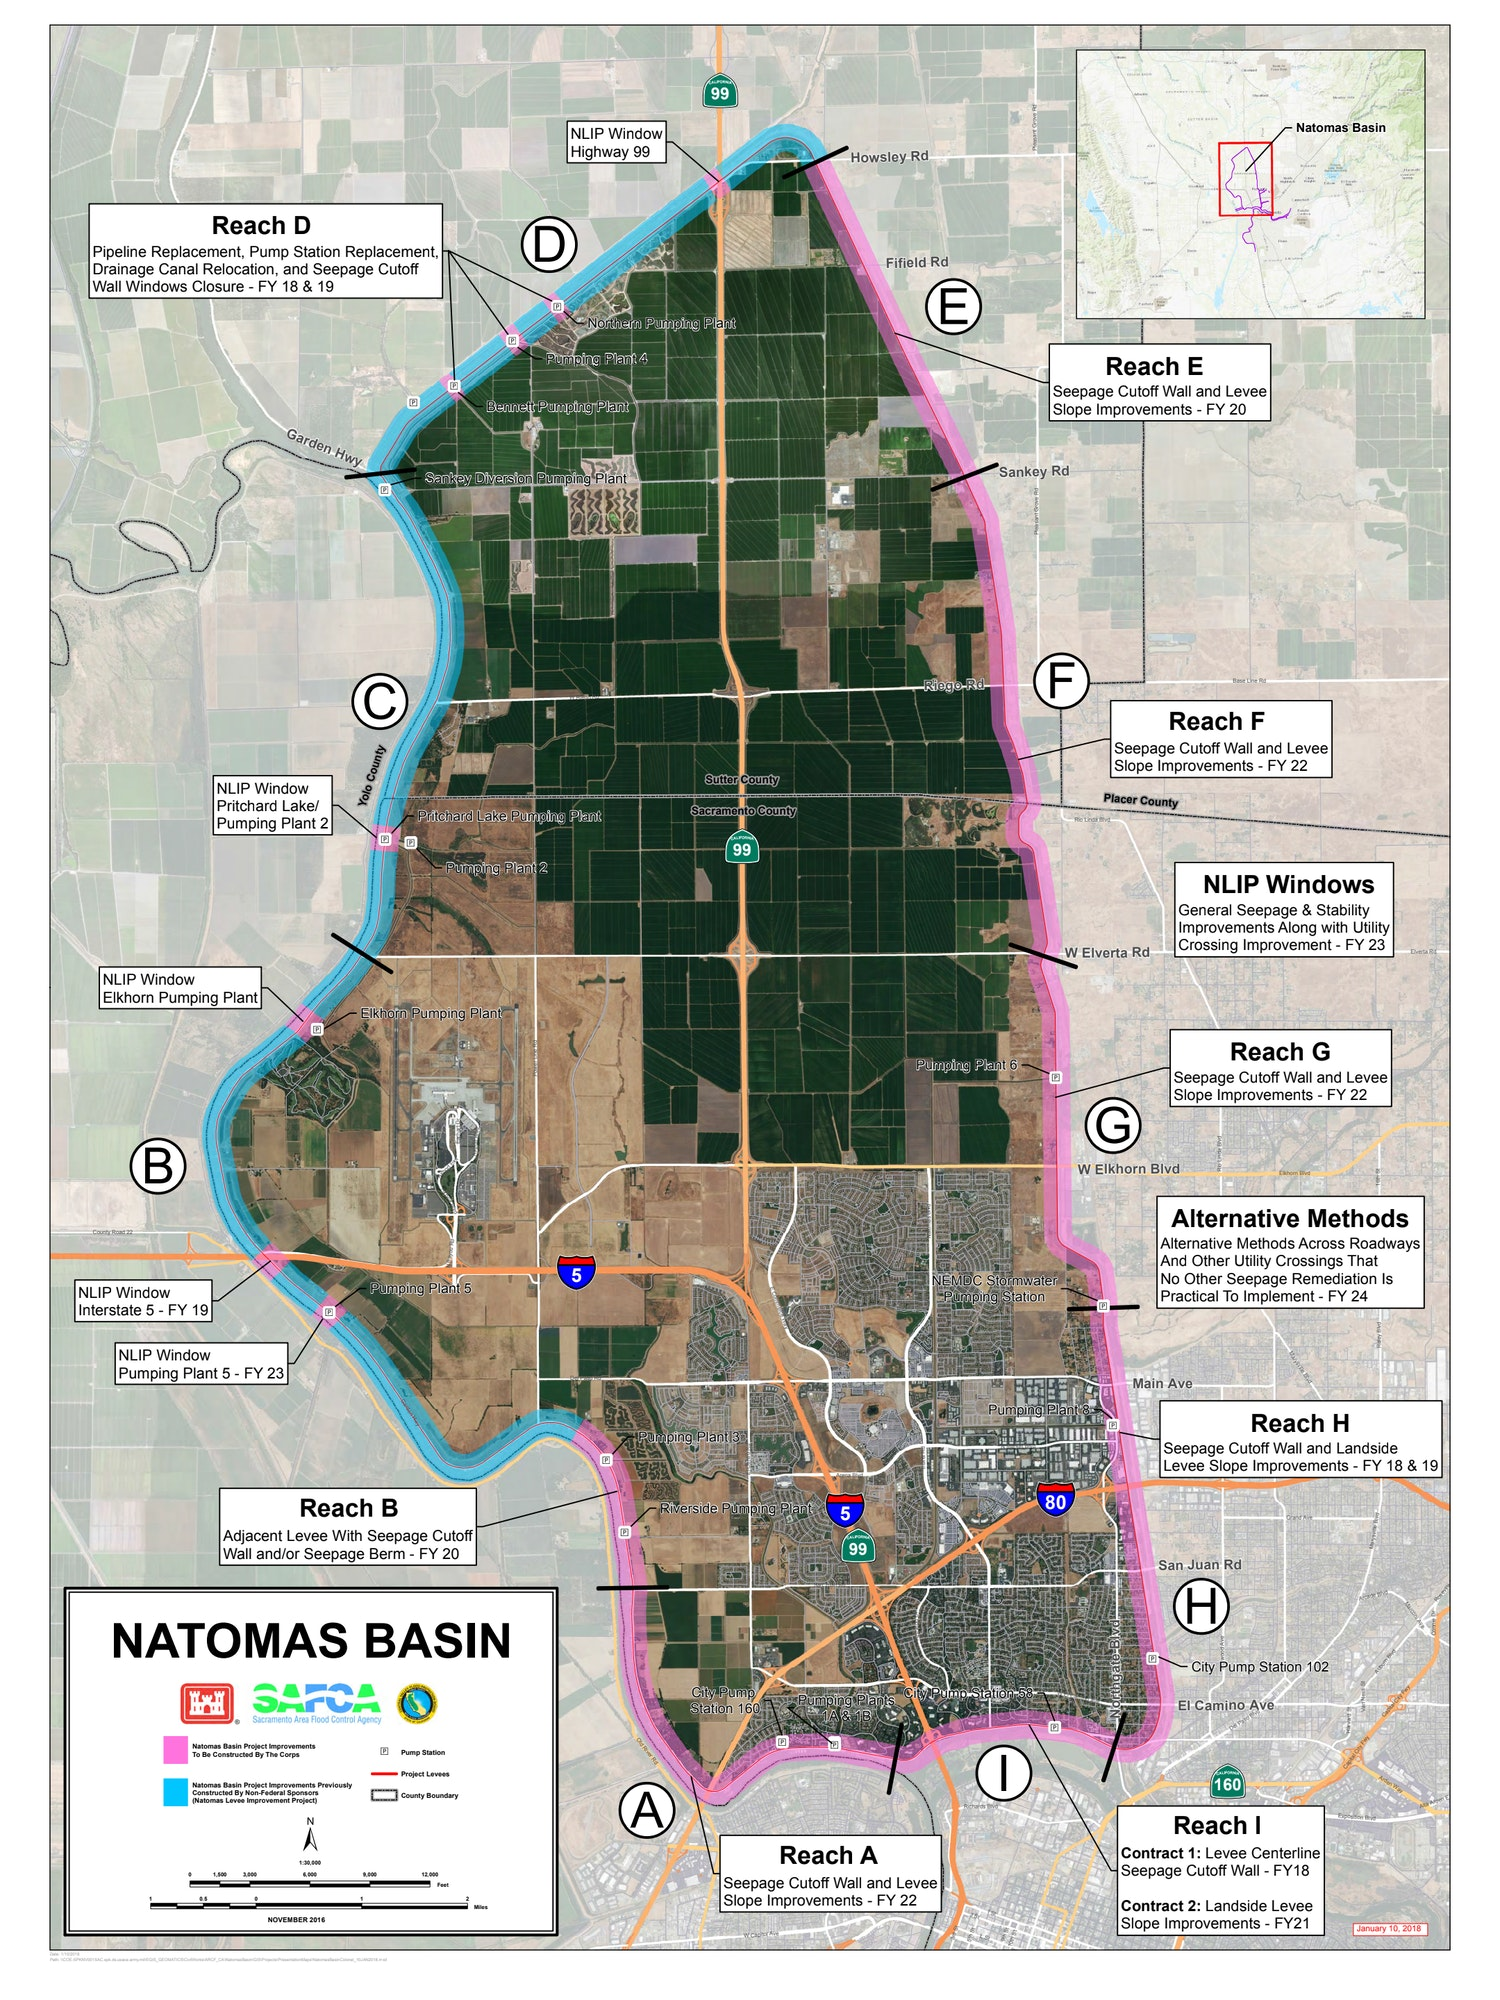 Map of the Natomas Basin showing project segments